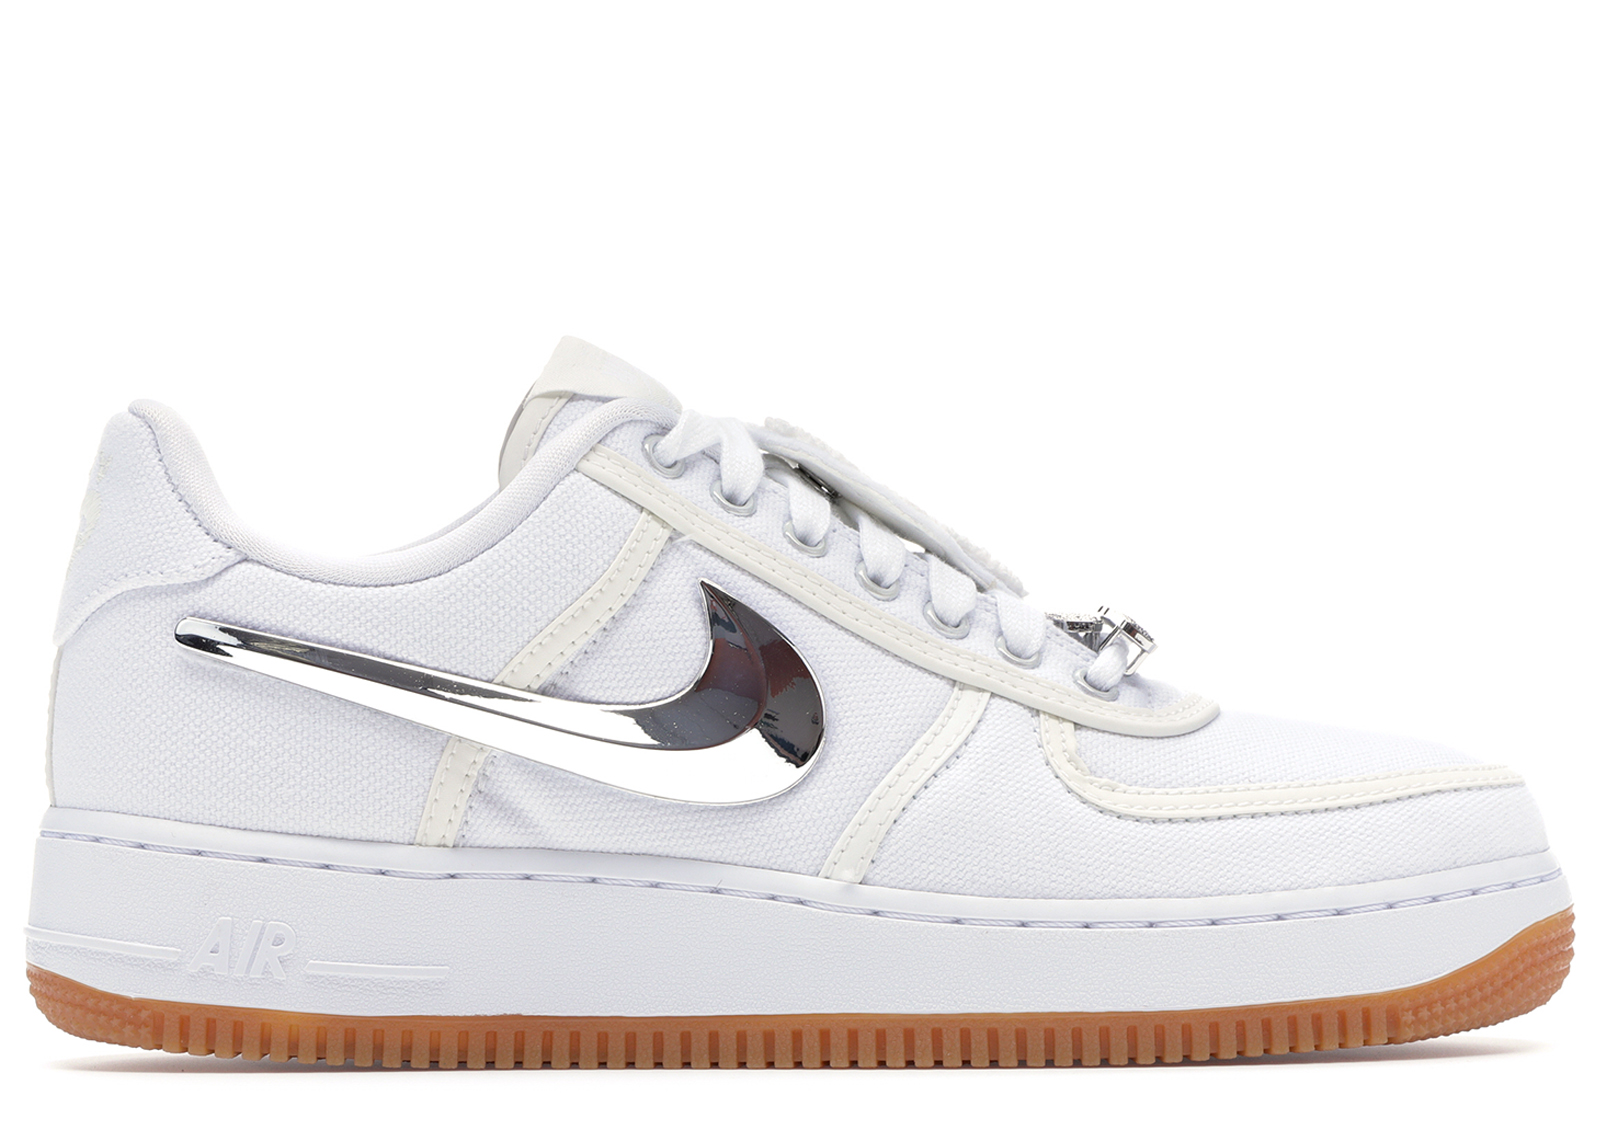 Nike Air Force 1 Low AF1 x Travis Scott